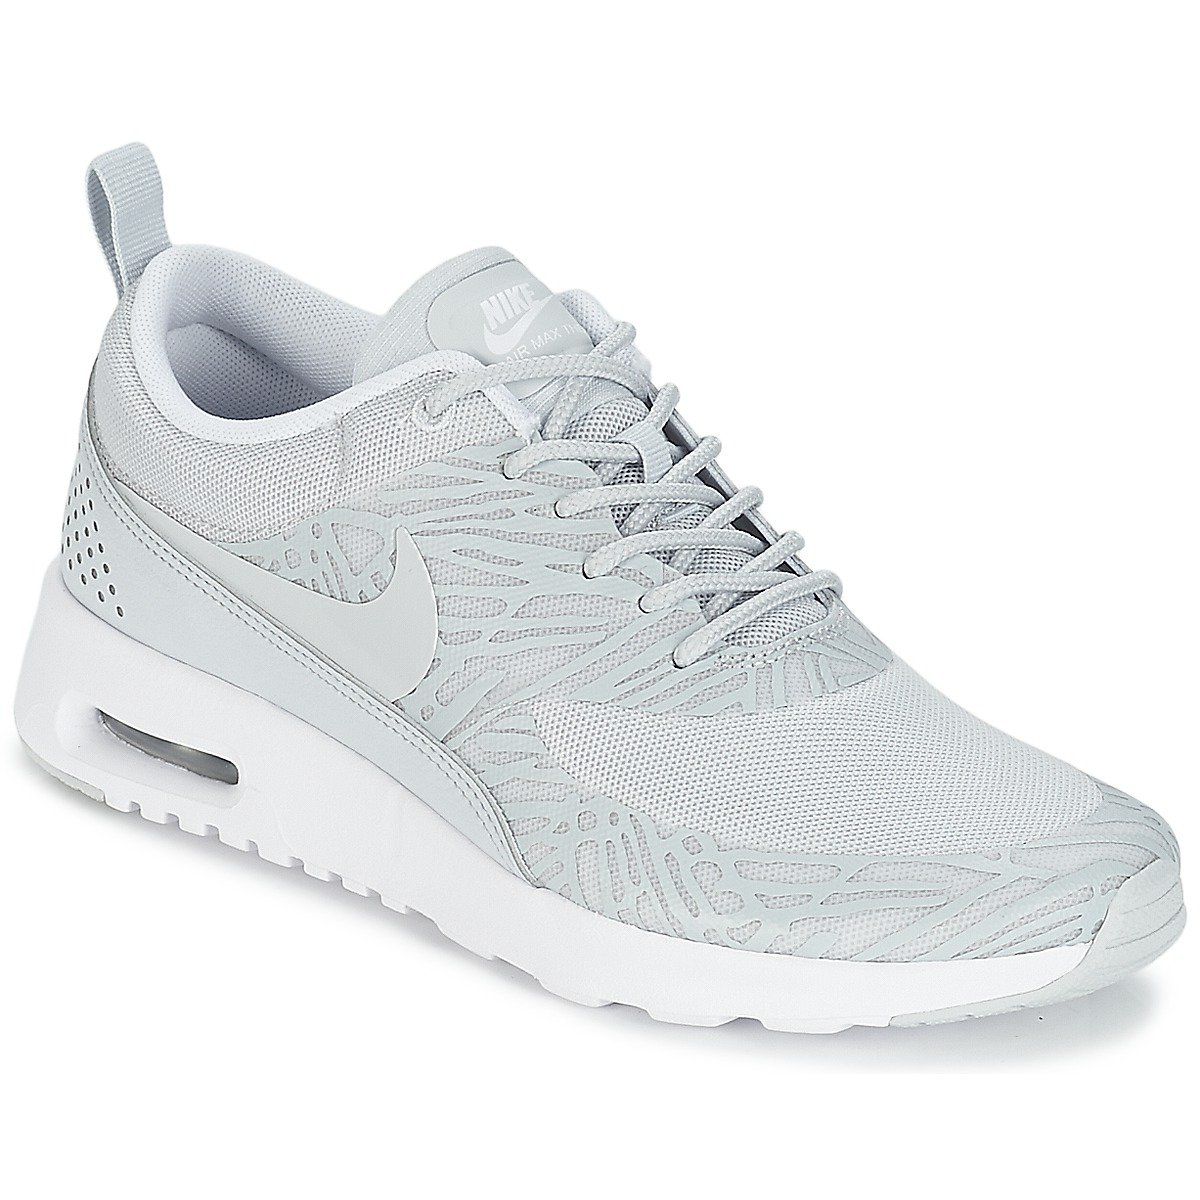 Baskets basses Nike AIR MAX THEA PRINT W Beige, Baskets